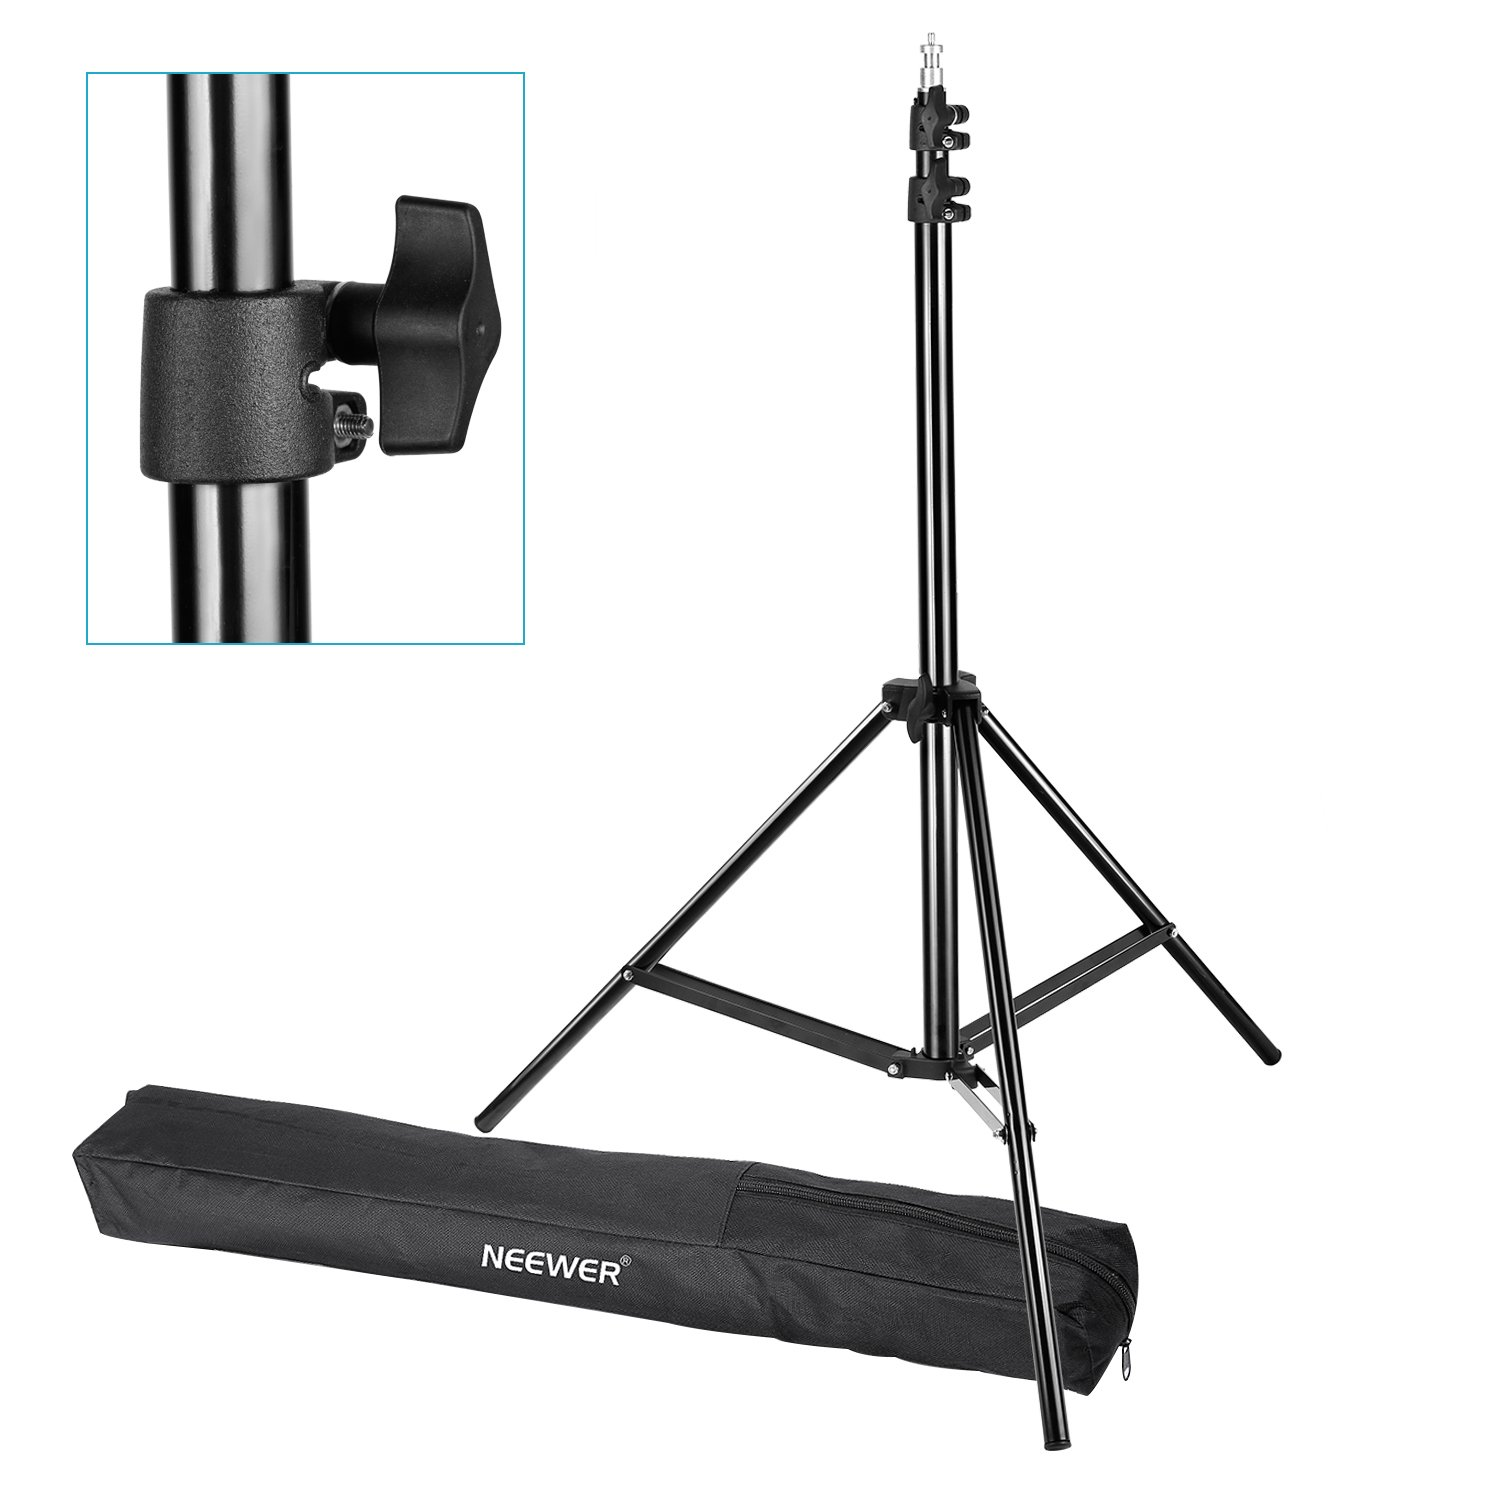 Neewer Pro 6 Feet/190CM Photography Light Stands with Carrying Case for Reflectors, Softboxes, Lights, Umbrellas, Backgrounds,etc. by Neewer